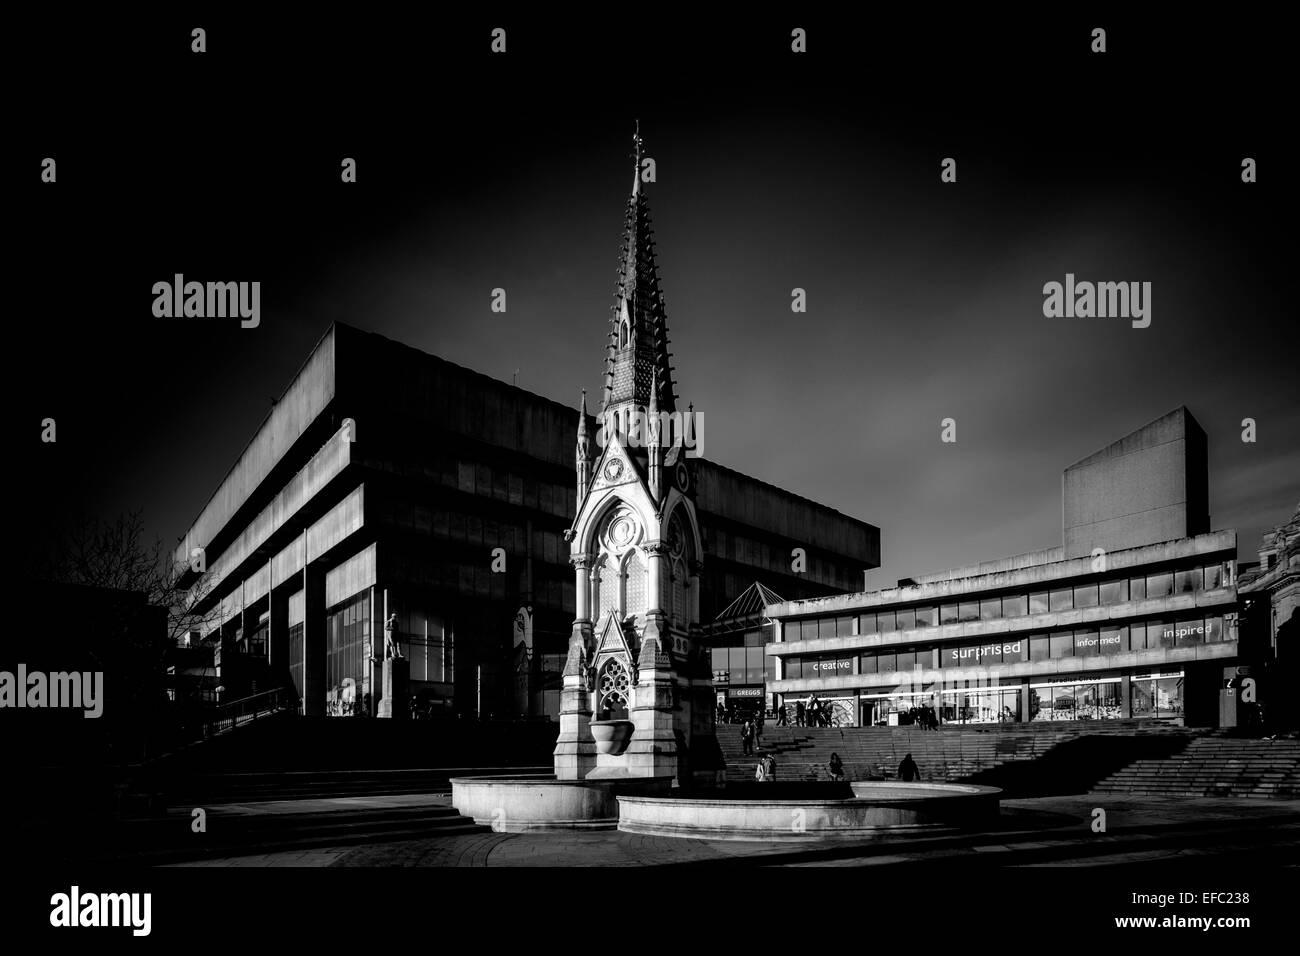 The Old Library (prior to demolition) in Chamberlain Square, Birmingham., Birmingham. - Stock Image